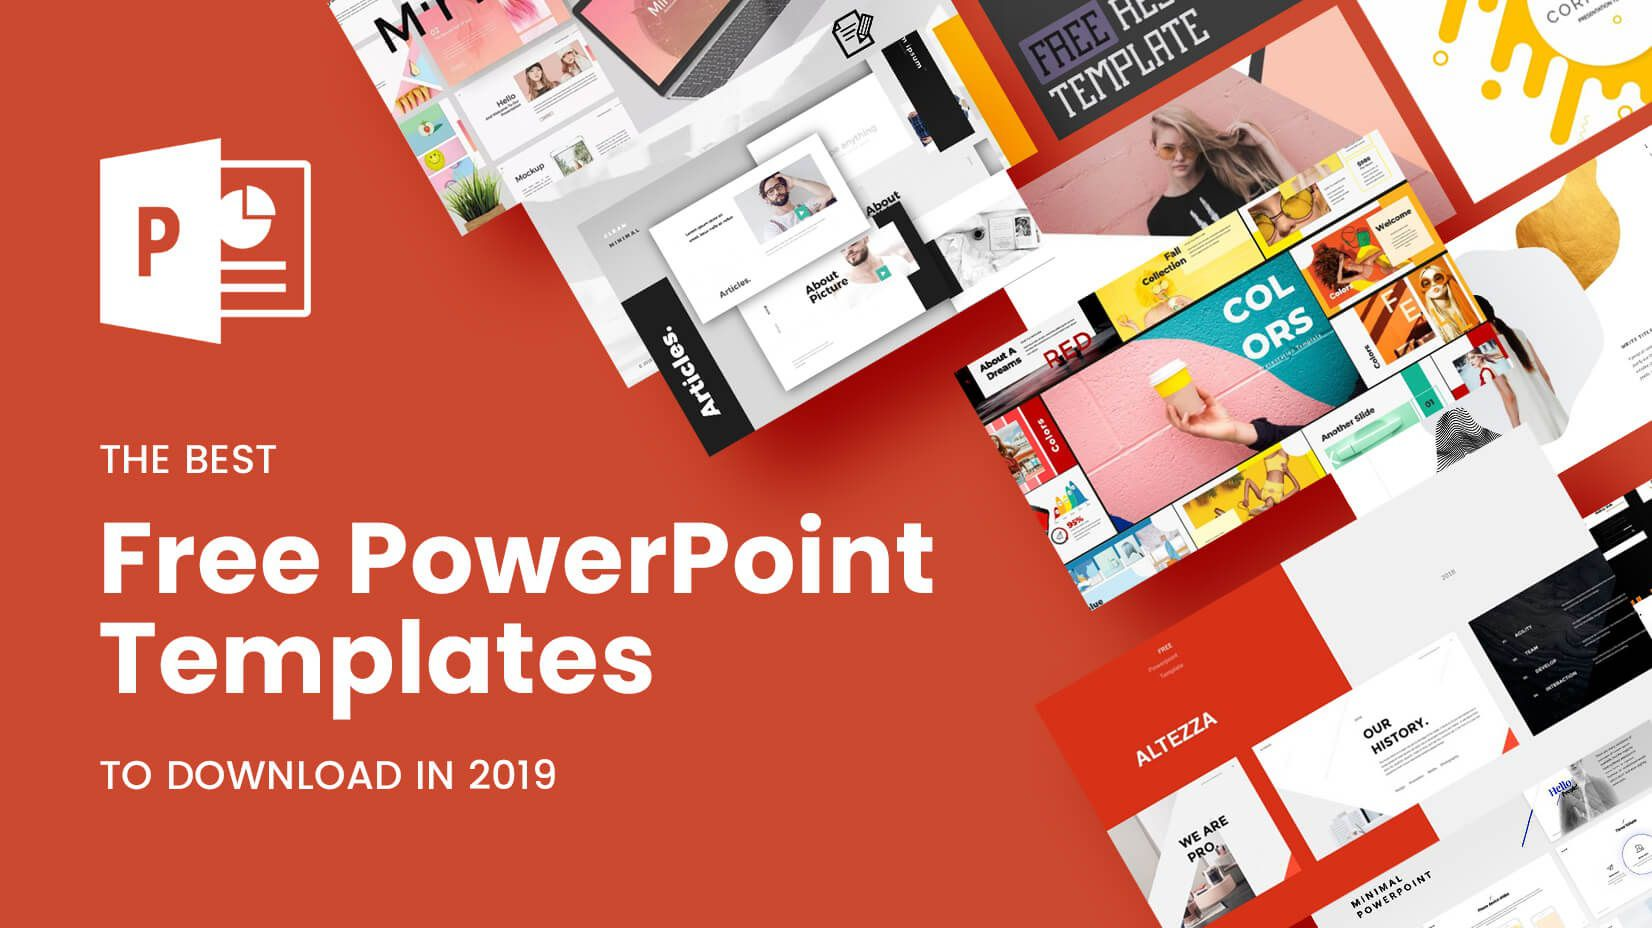 009 Unusual Professional Ppt Template Free Download High Resolution  Microsoft 2017 Powerpoint Presentation 2019Full